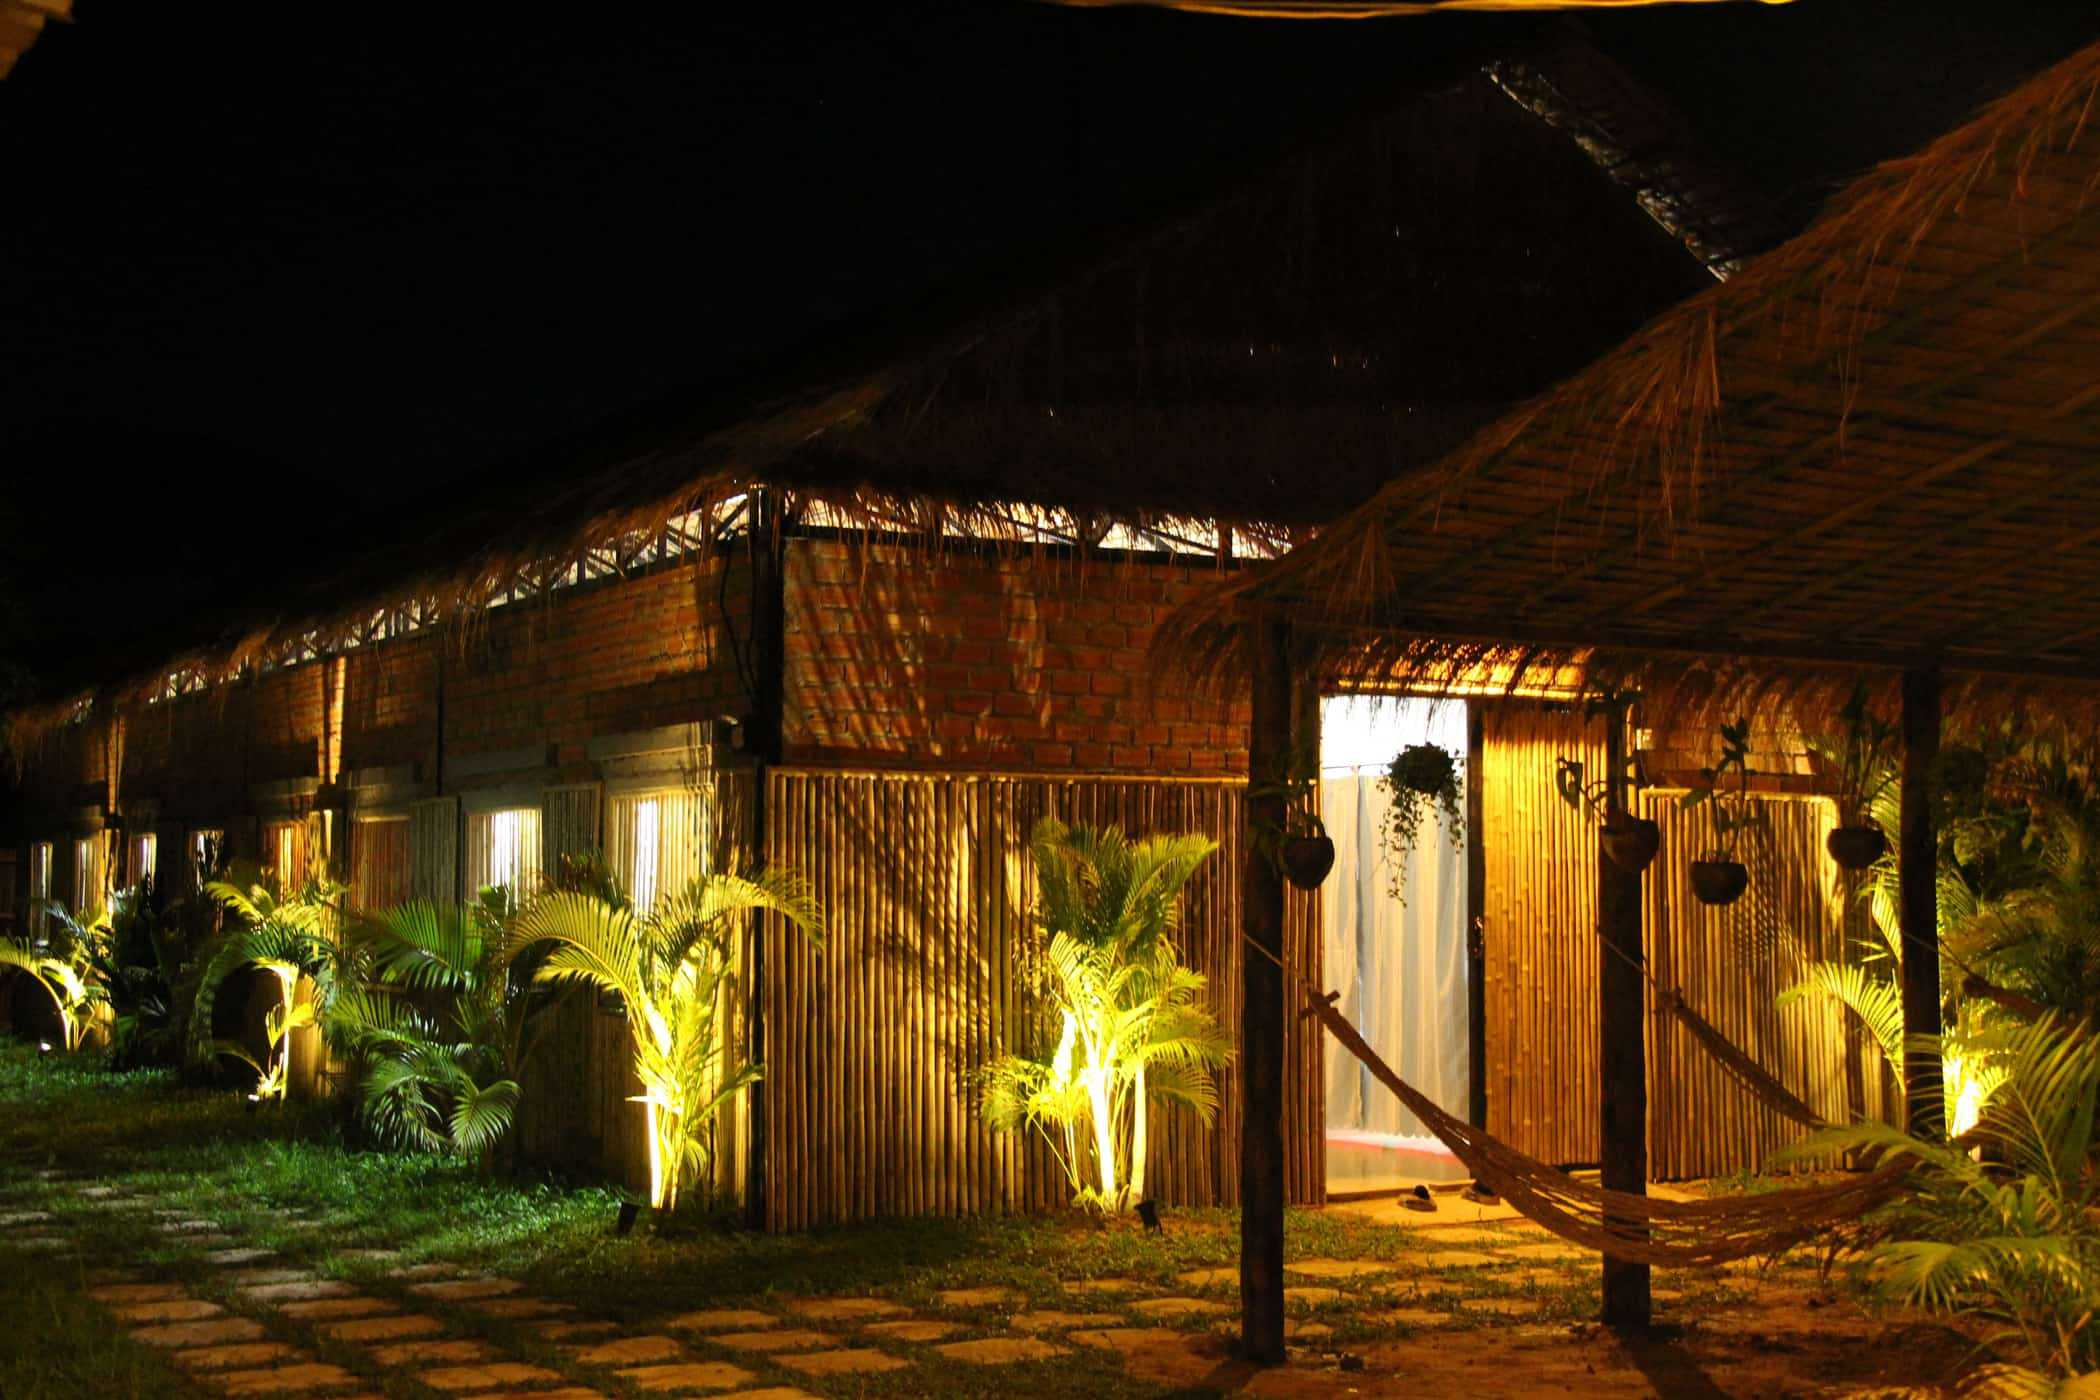 The peaceful vibe of Bambu Stay captured in this photo - Siem Reap, Cambodia